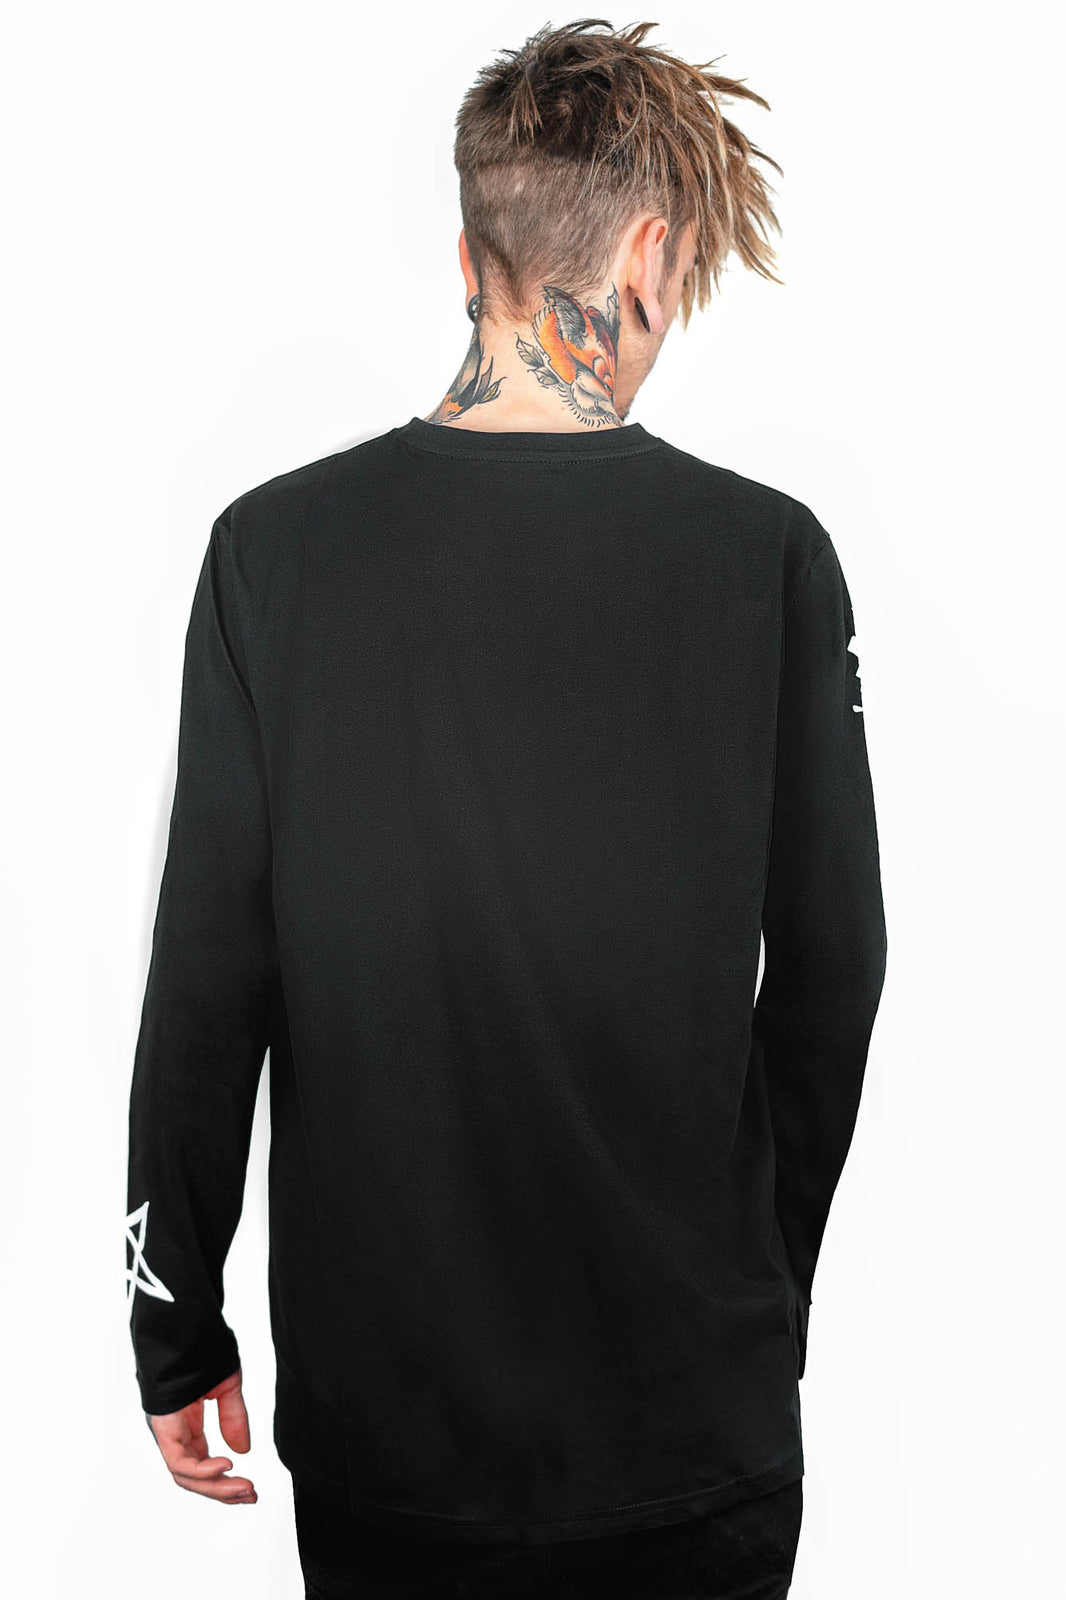 Juju Long Sleeve Top